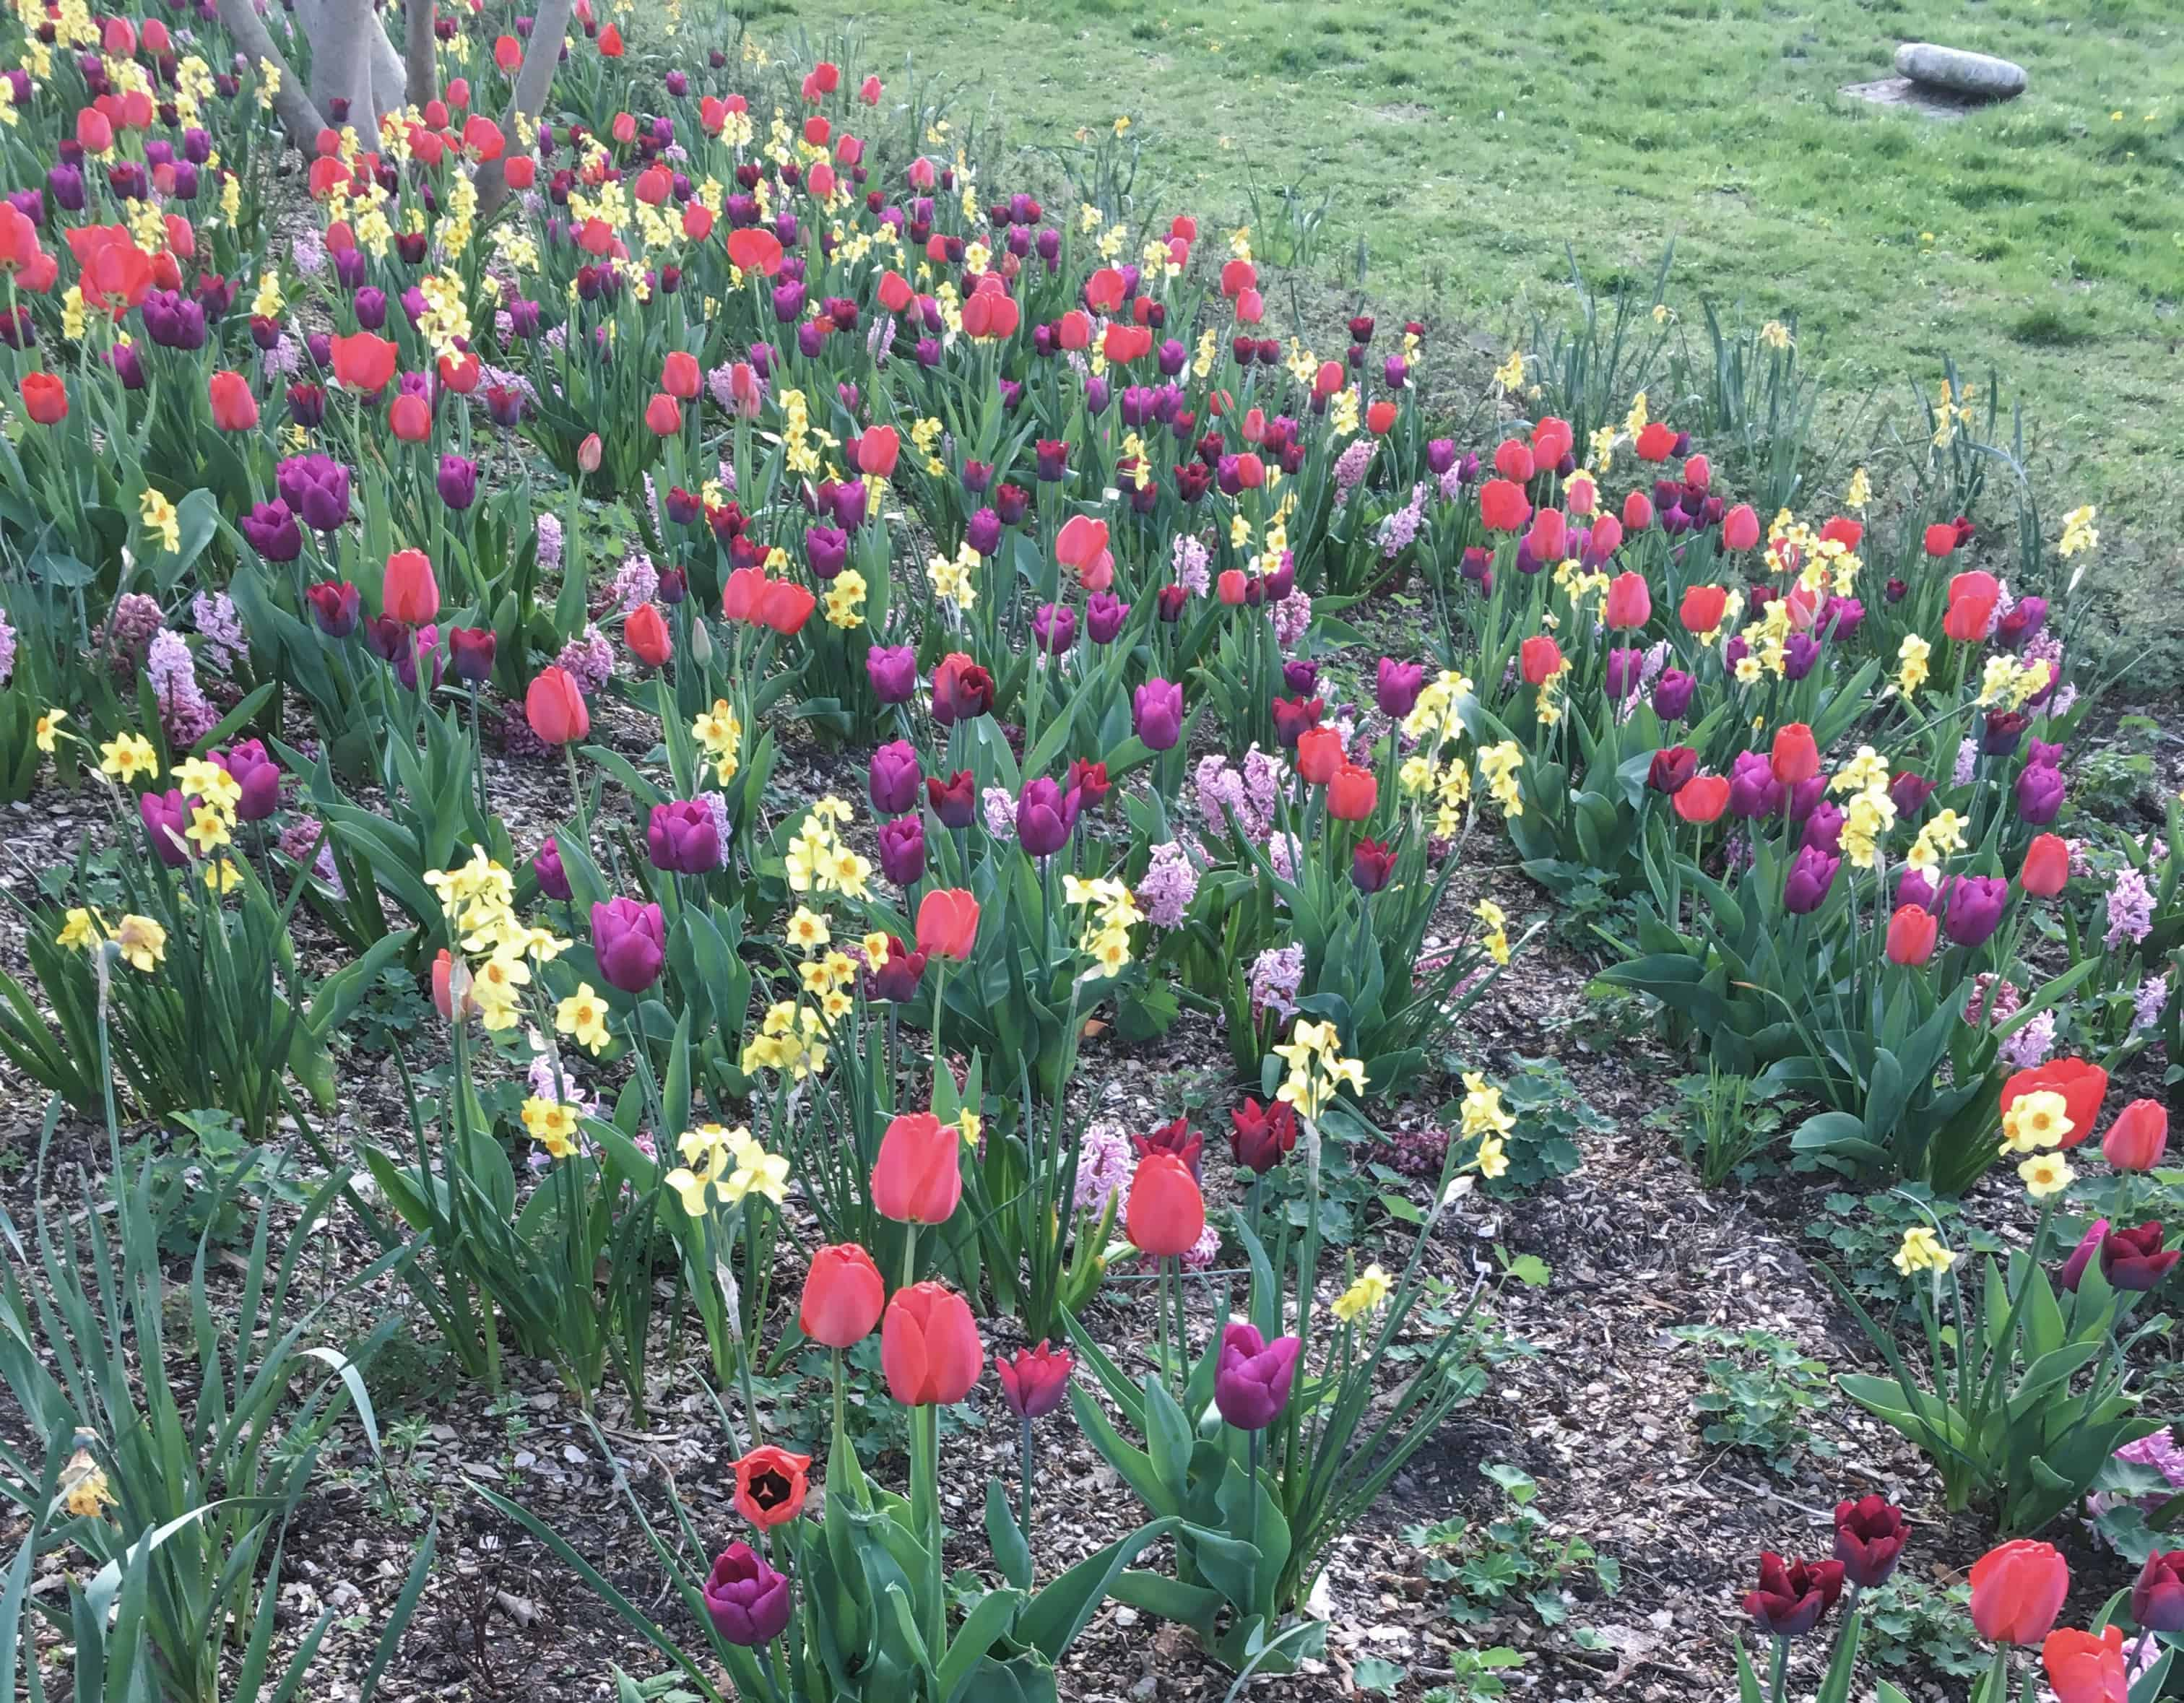 Tulips and daffodils are blooming in many parks during the spring in Hamburg, Germany